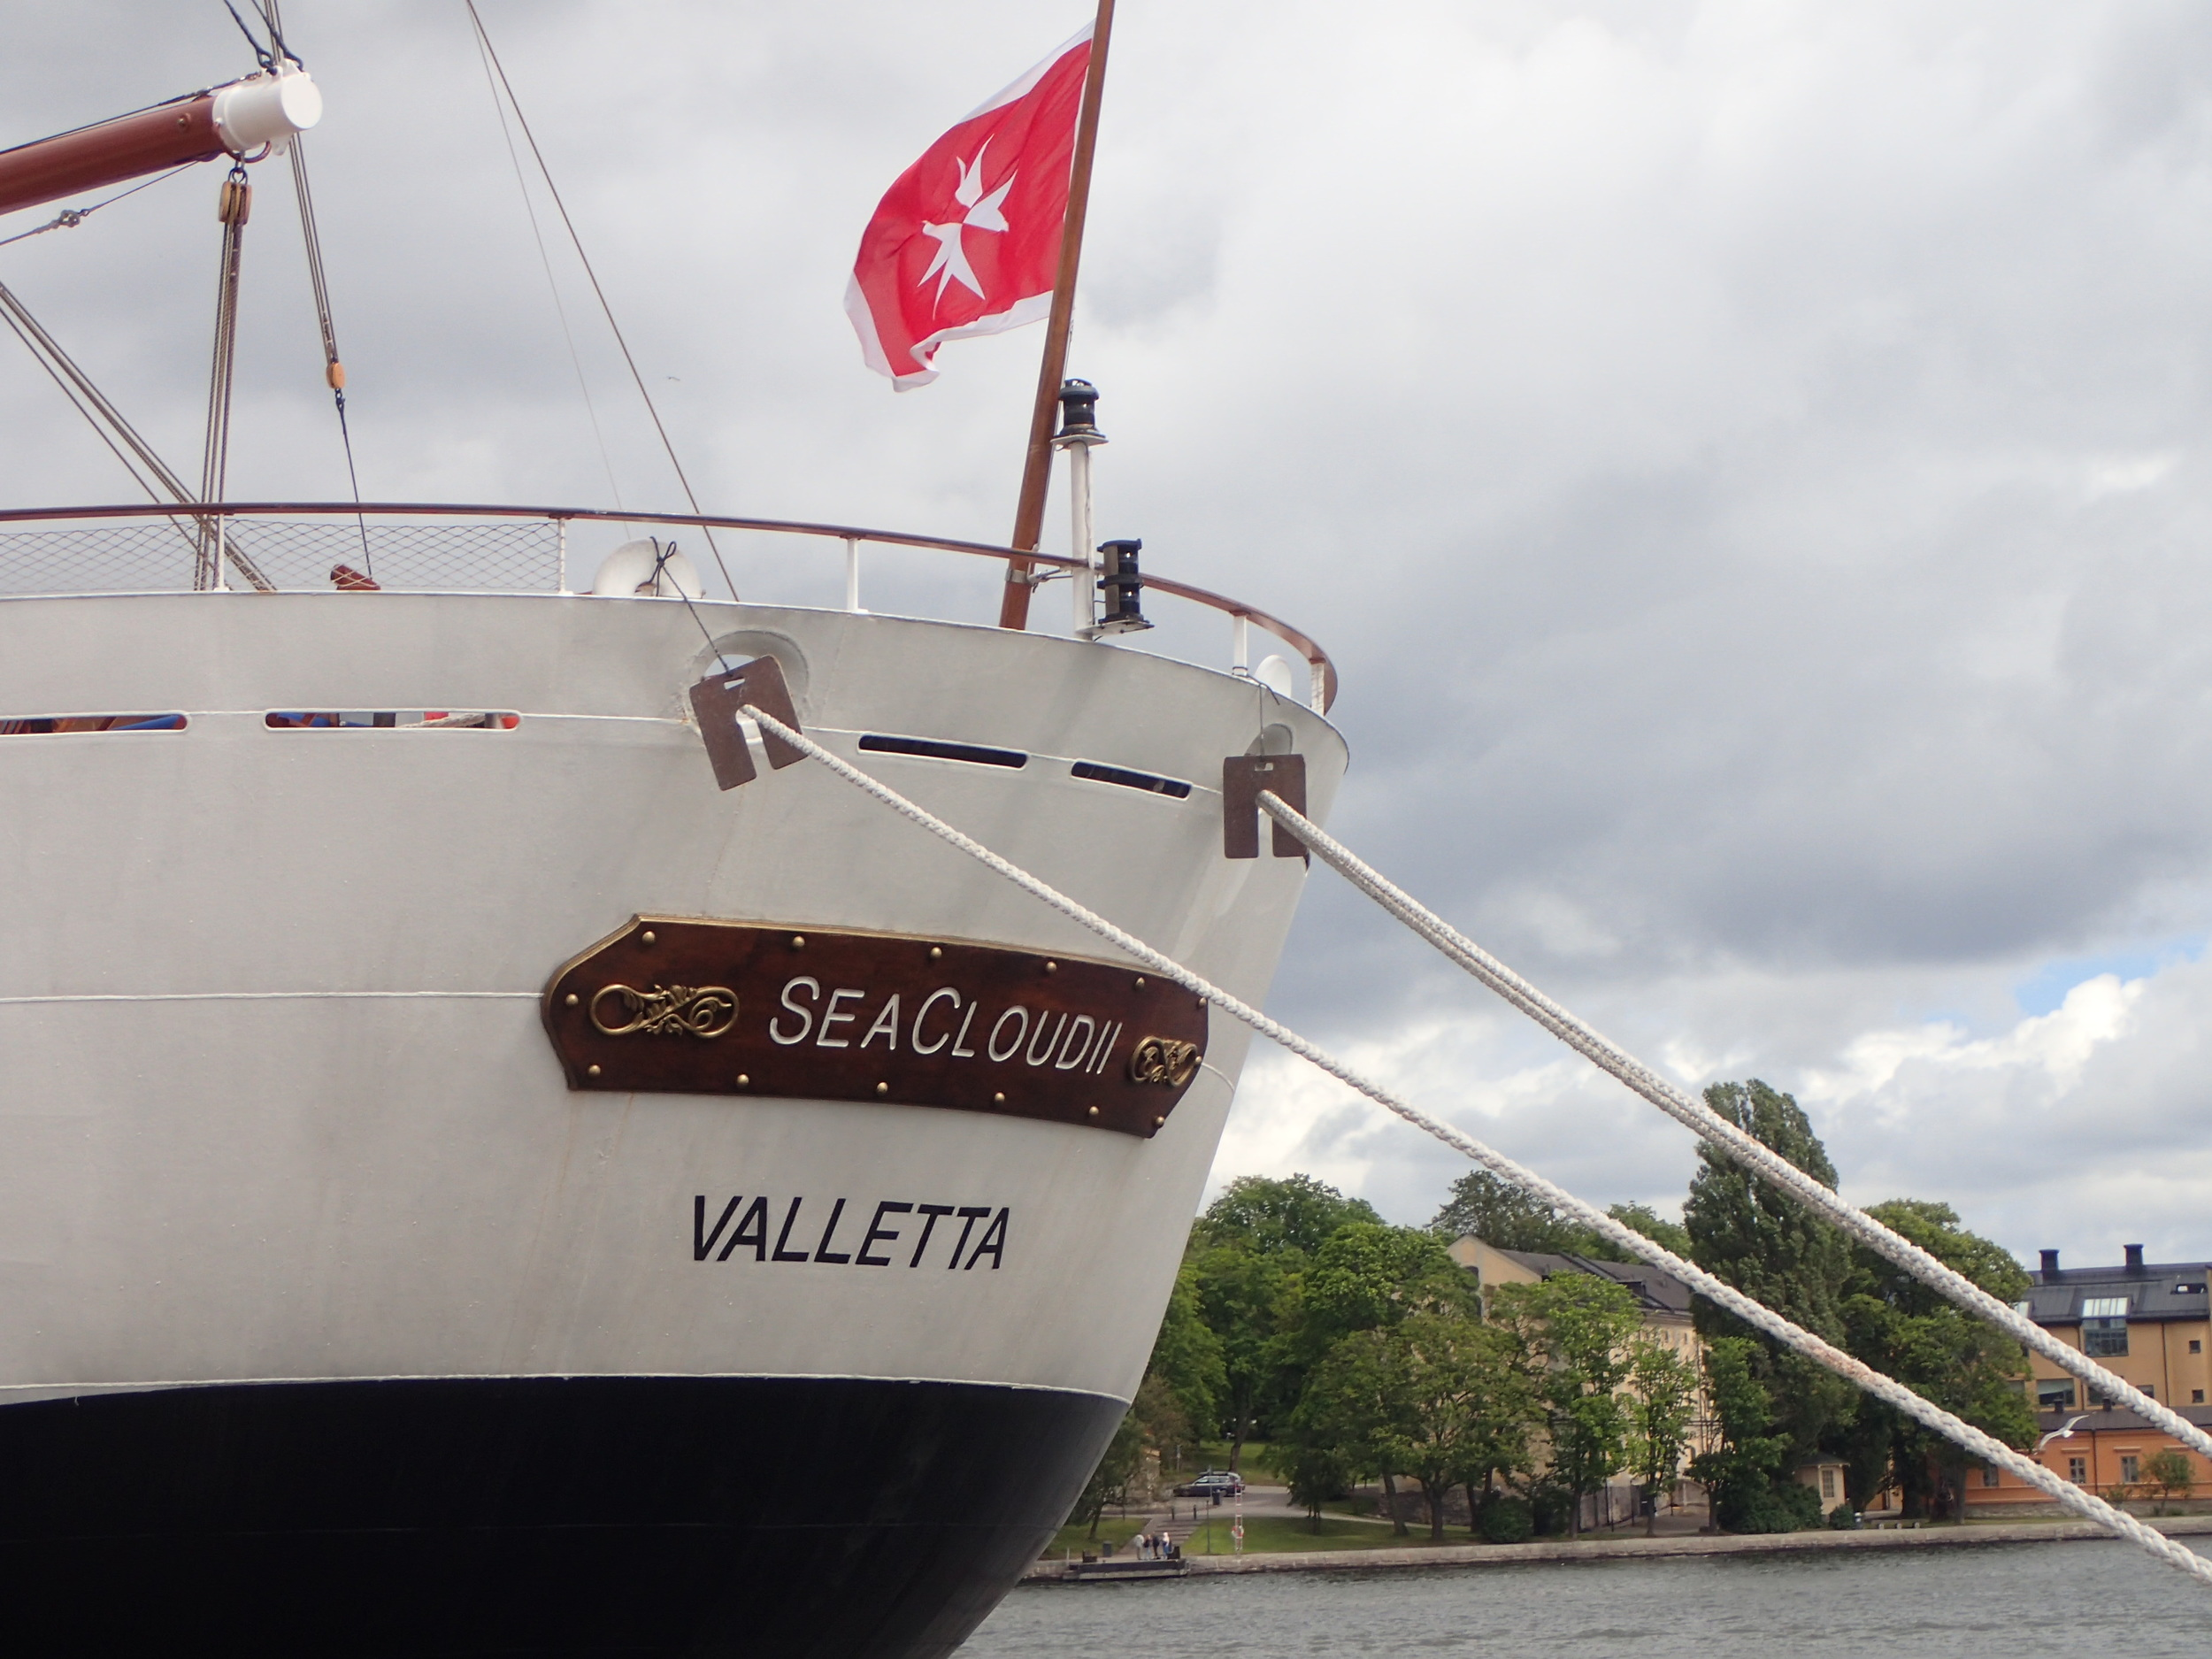 The sailing vessel Sea Cloud II from Valletta in Stockholm harbor (July 2015).